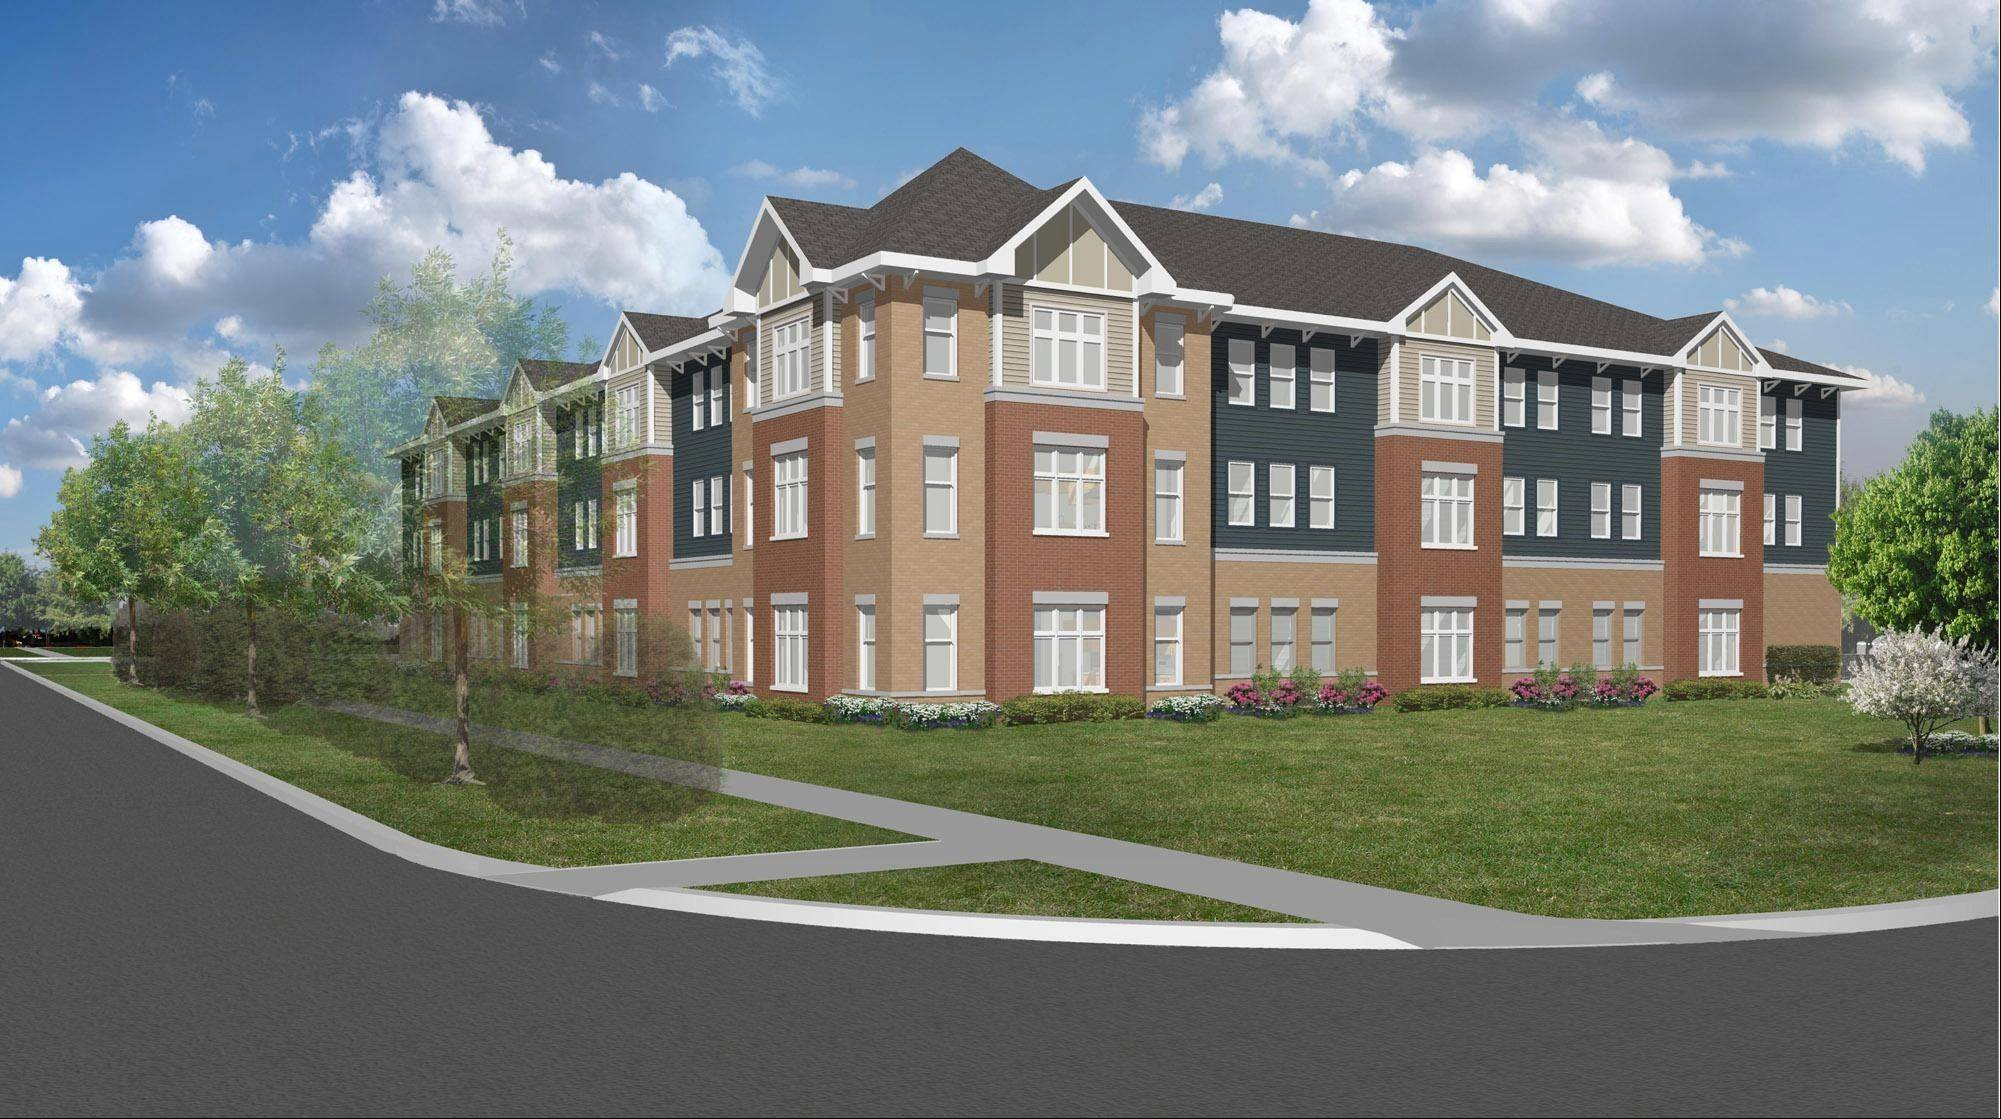 Catherine Alice Gardens is a proposed permanent supportive housing facility in Palatine consisting of 33 apartments for people with disabilities. The proposal, which has drawn both supporters and critics, will go before Palatine's plan commission Tuesday.